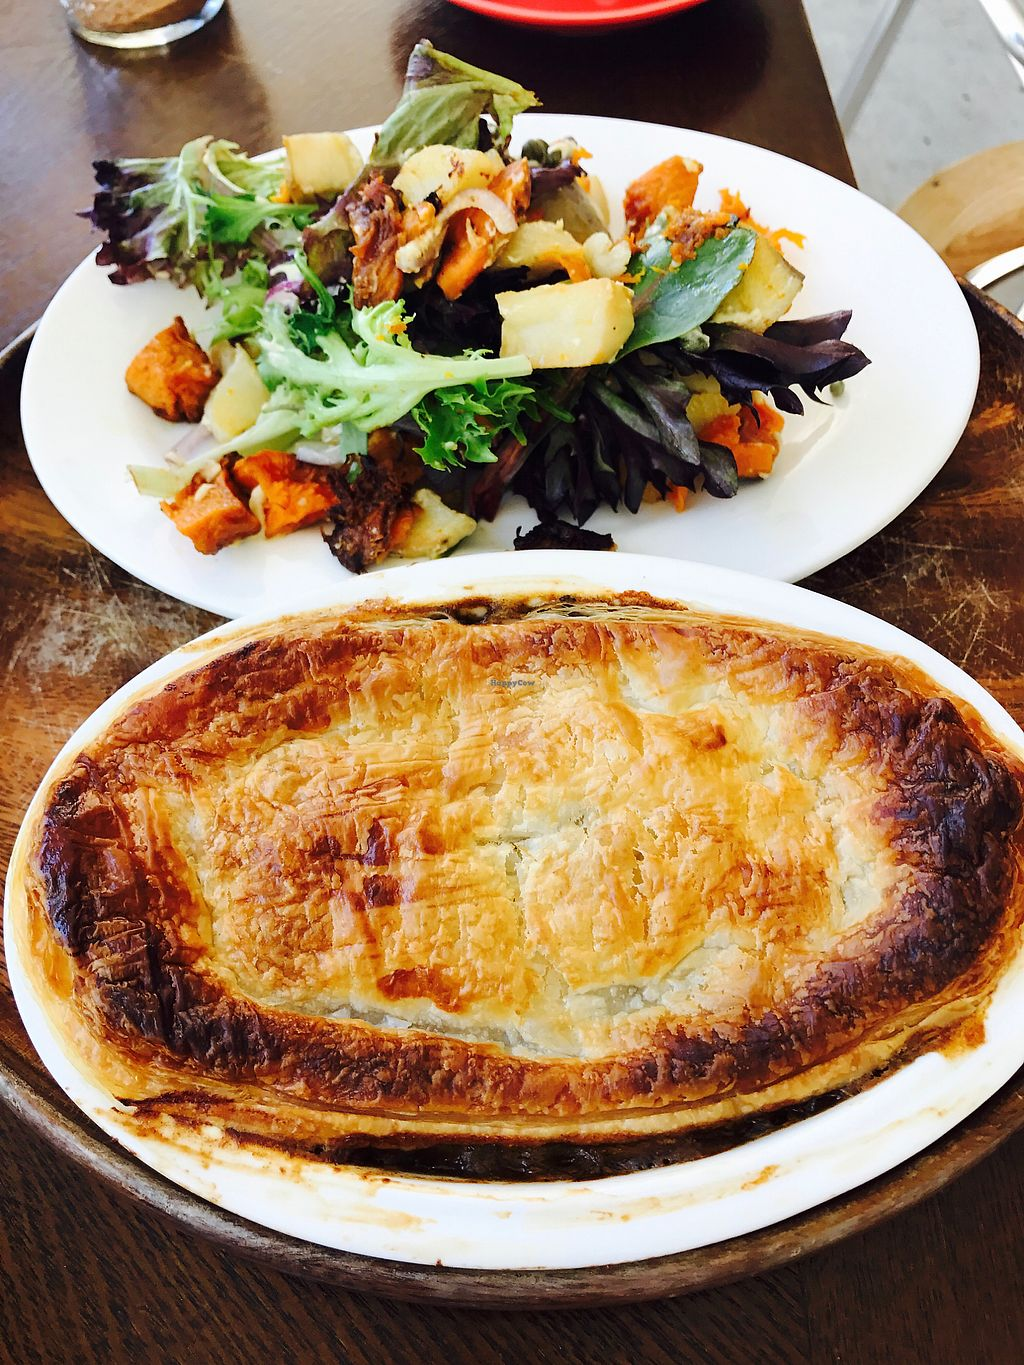 "Photo of CLOSED: LYV  by <a href=""/members/profile/NirvanaRoseWilliams"">NirvanaRoseWilliams</a> <br/>Mince and mushroom pie with roasted vegetable salad <br/> August 9, 2017  - <a href='/contact/abuse/image/88744/290671'>Report</a>"